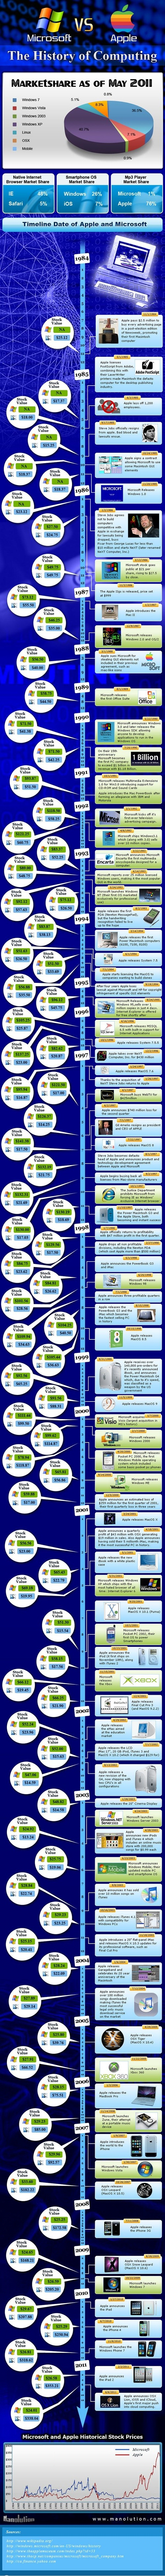 Microsoft vs. Apple Infografía